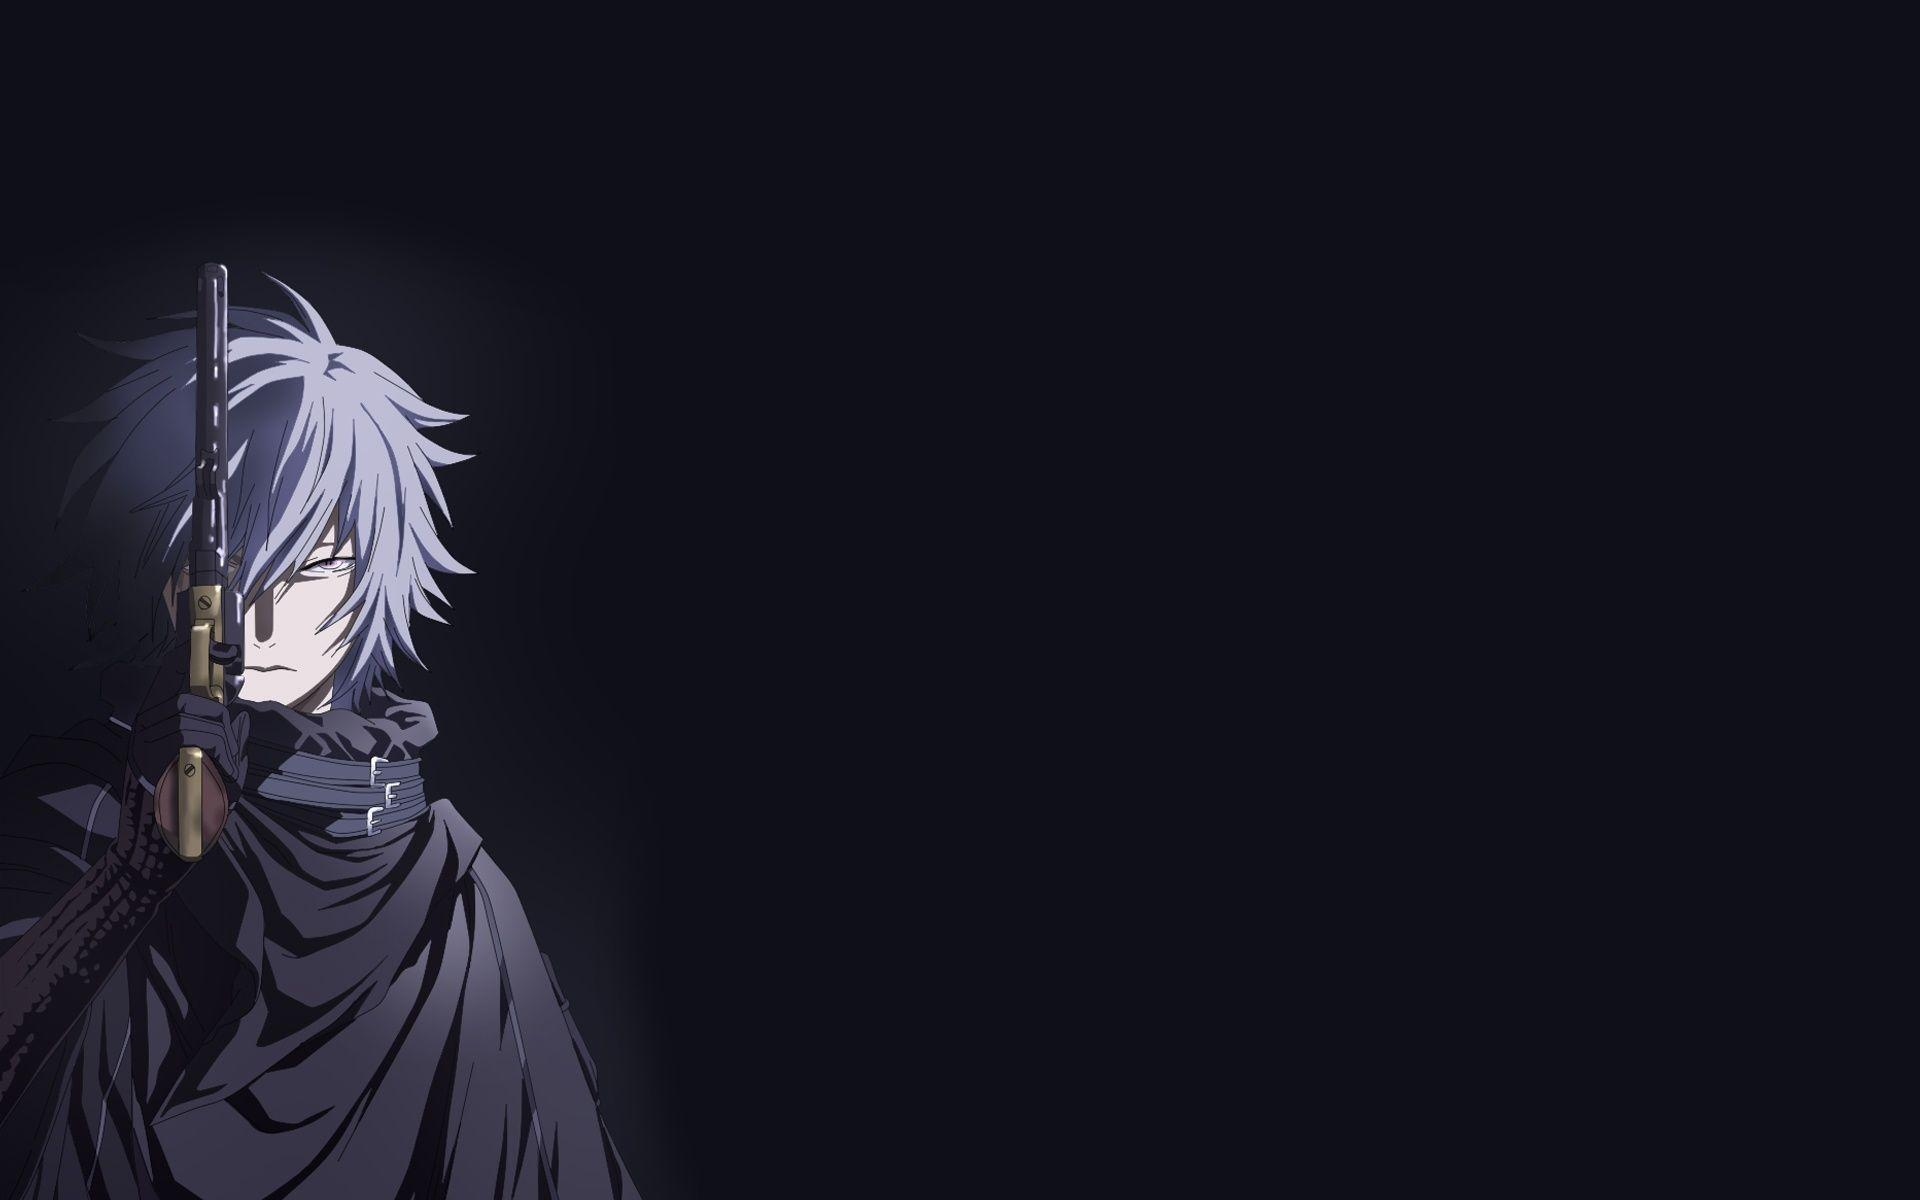 Black And White Anime Aesthetic Wallpapers Top Free Black And White Anime Aesthetic Backgrounds Wallpaperaccess